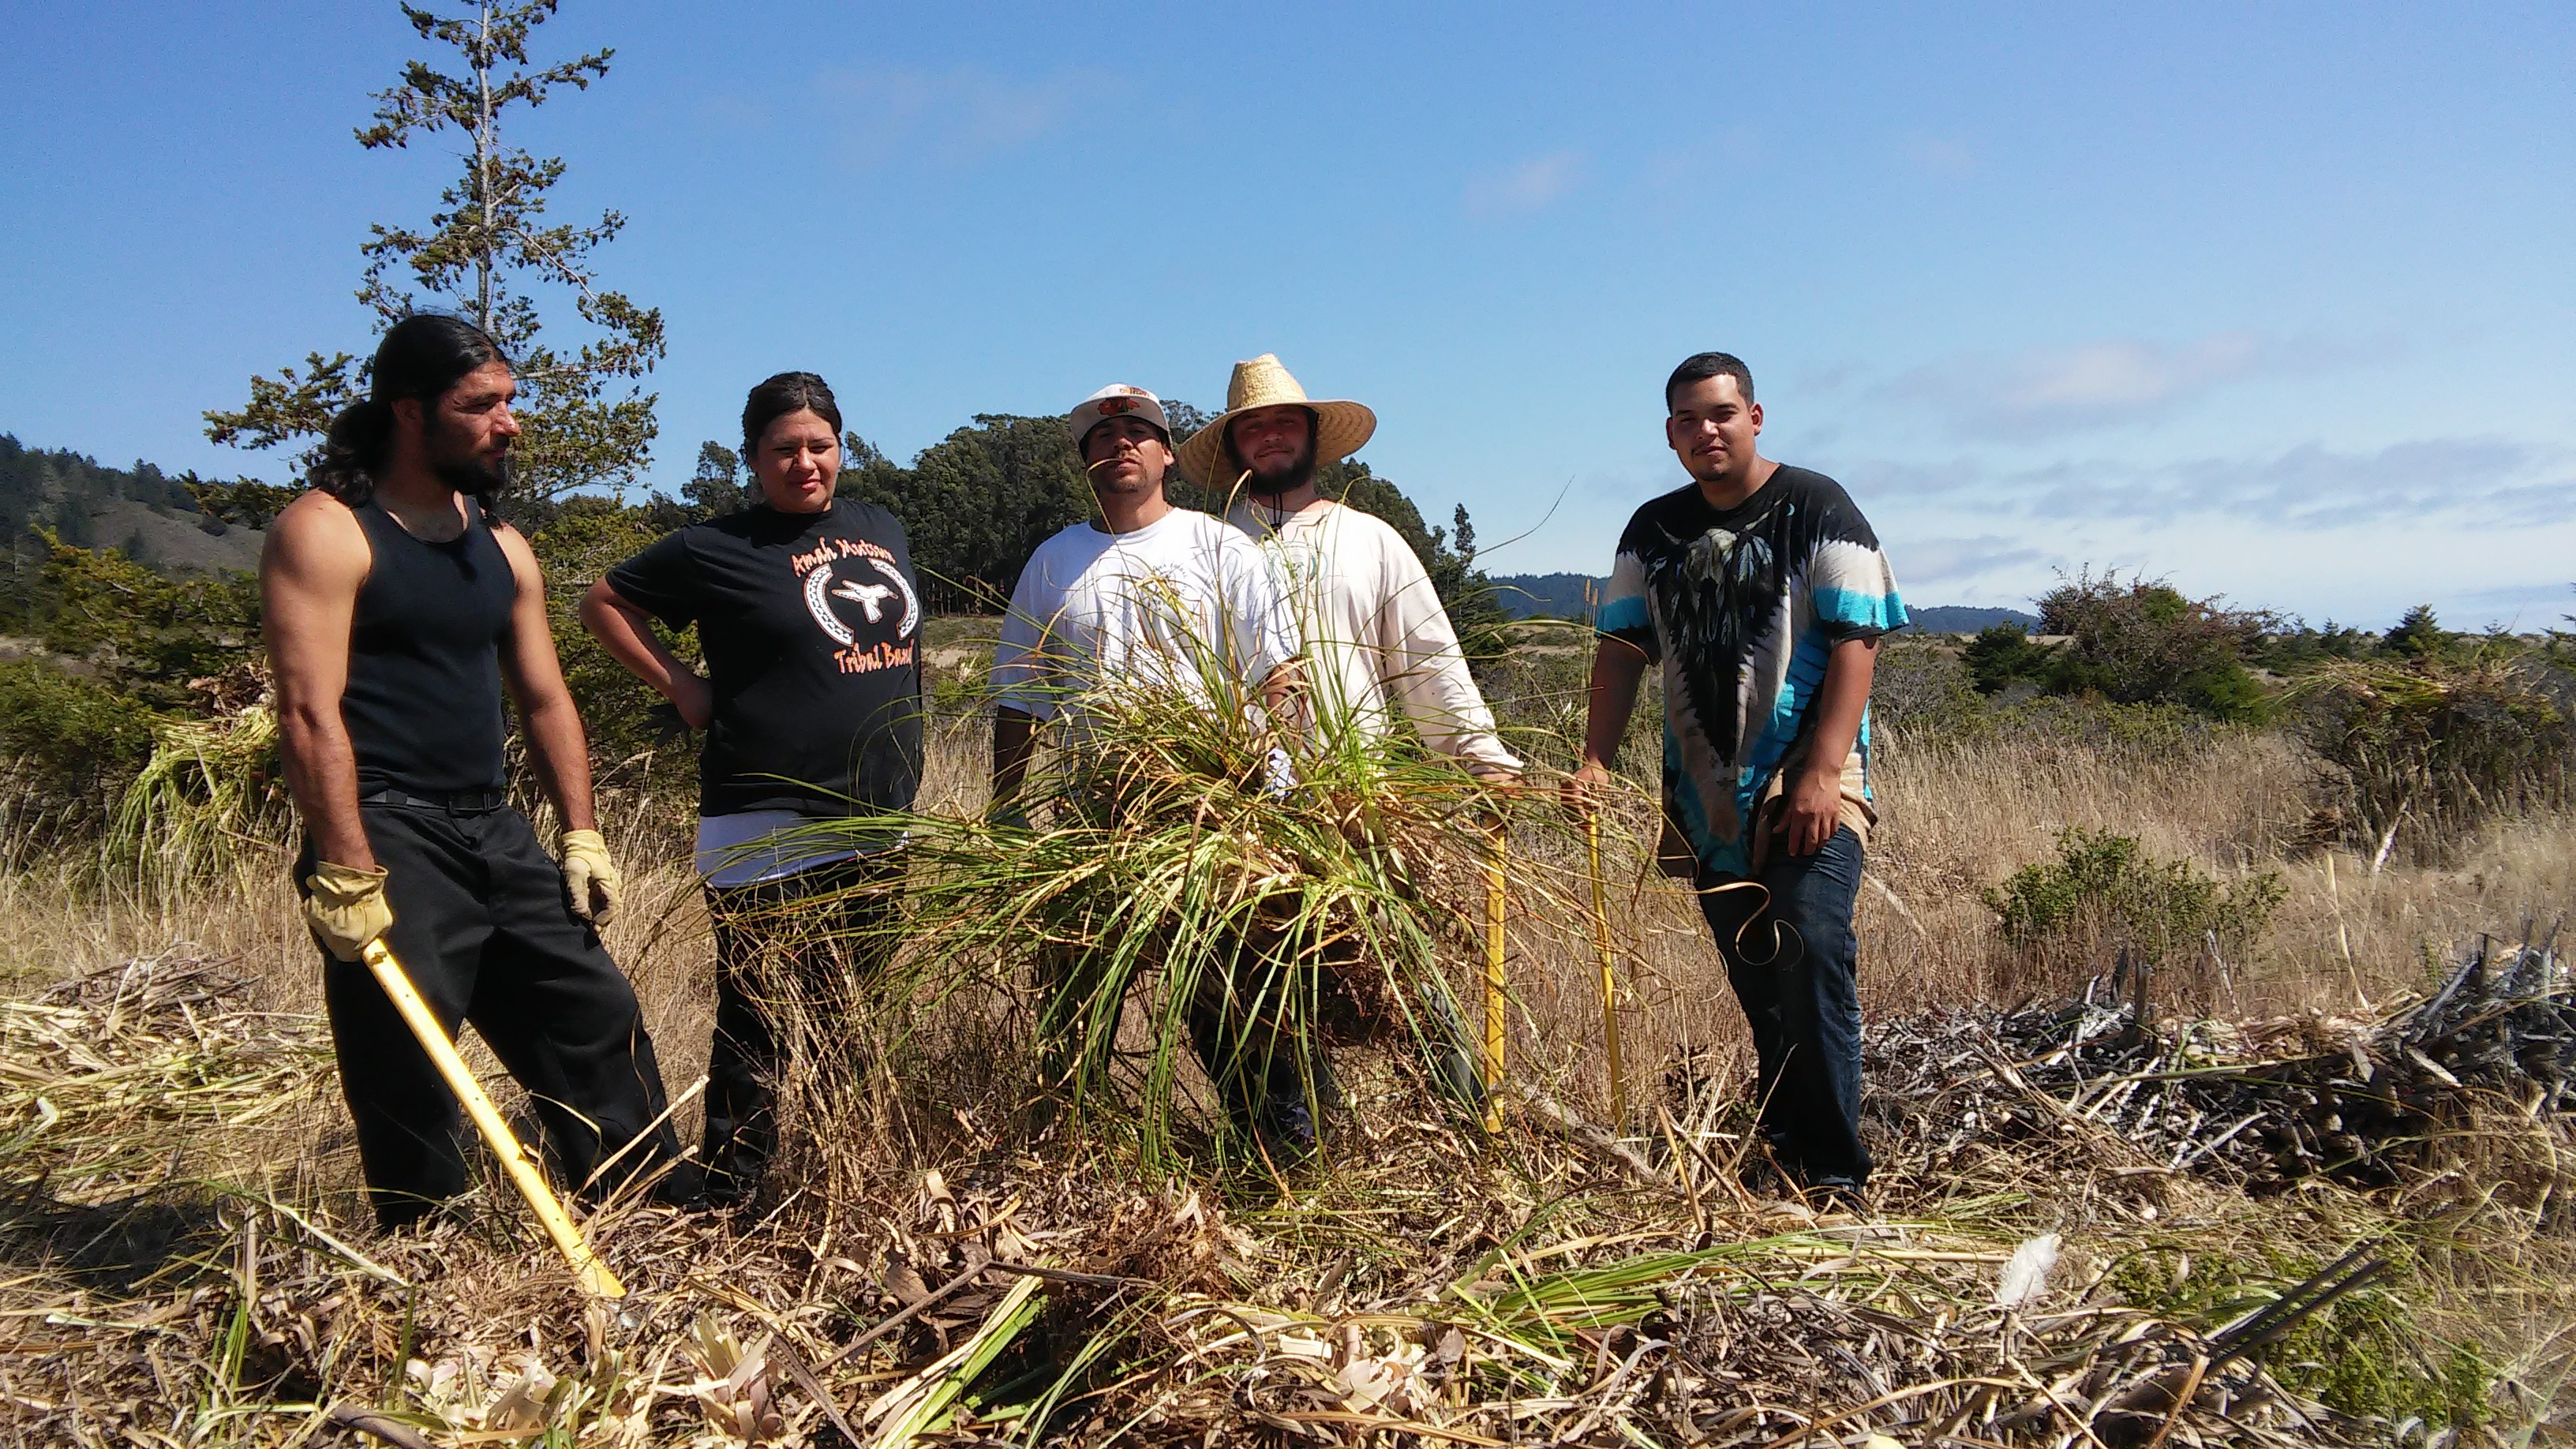 The August 2016 Amah Mutsun Native Stewards. From left to right: Abran Lopez, Natalie Garcia, Gabriel Pineda, Paul Lopez and Nathan Vasquez.